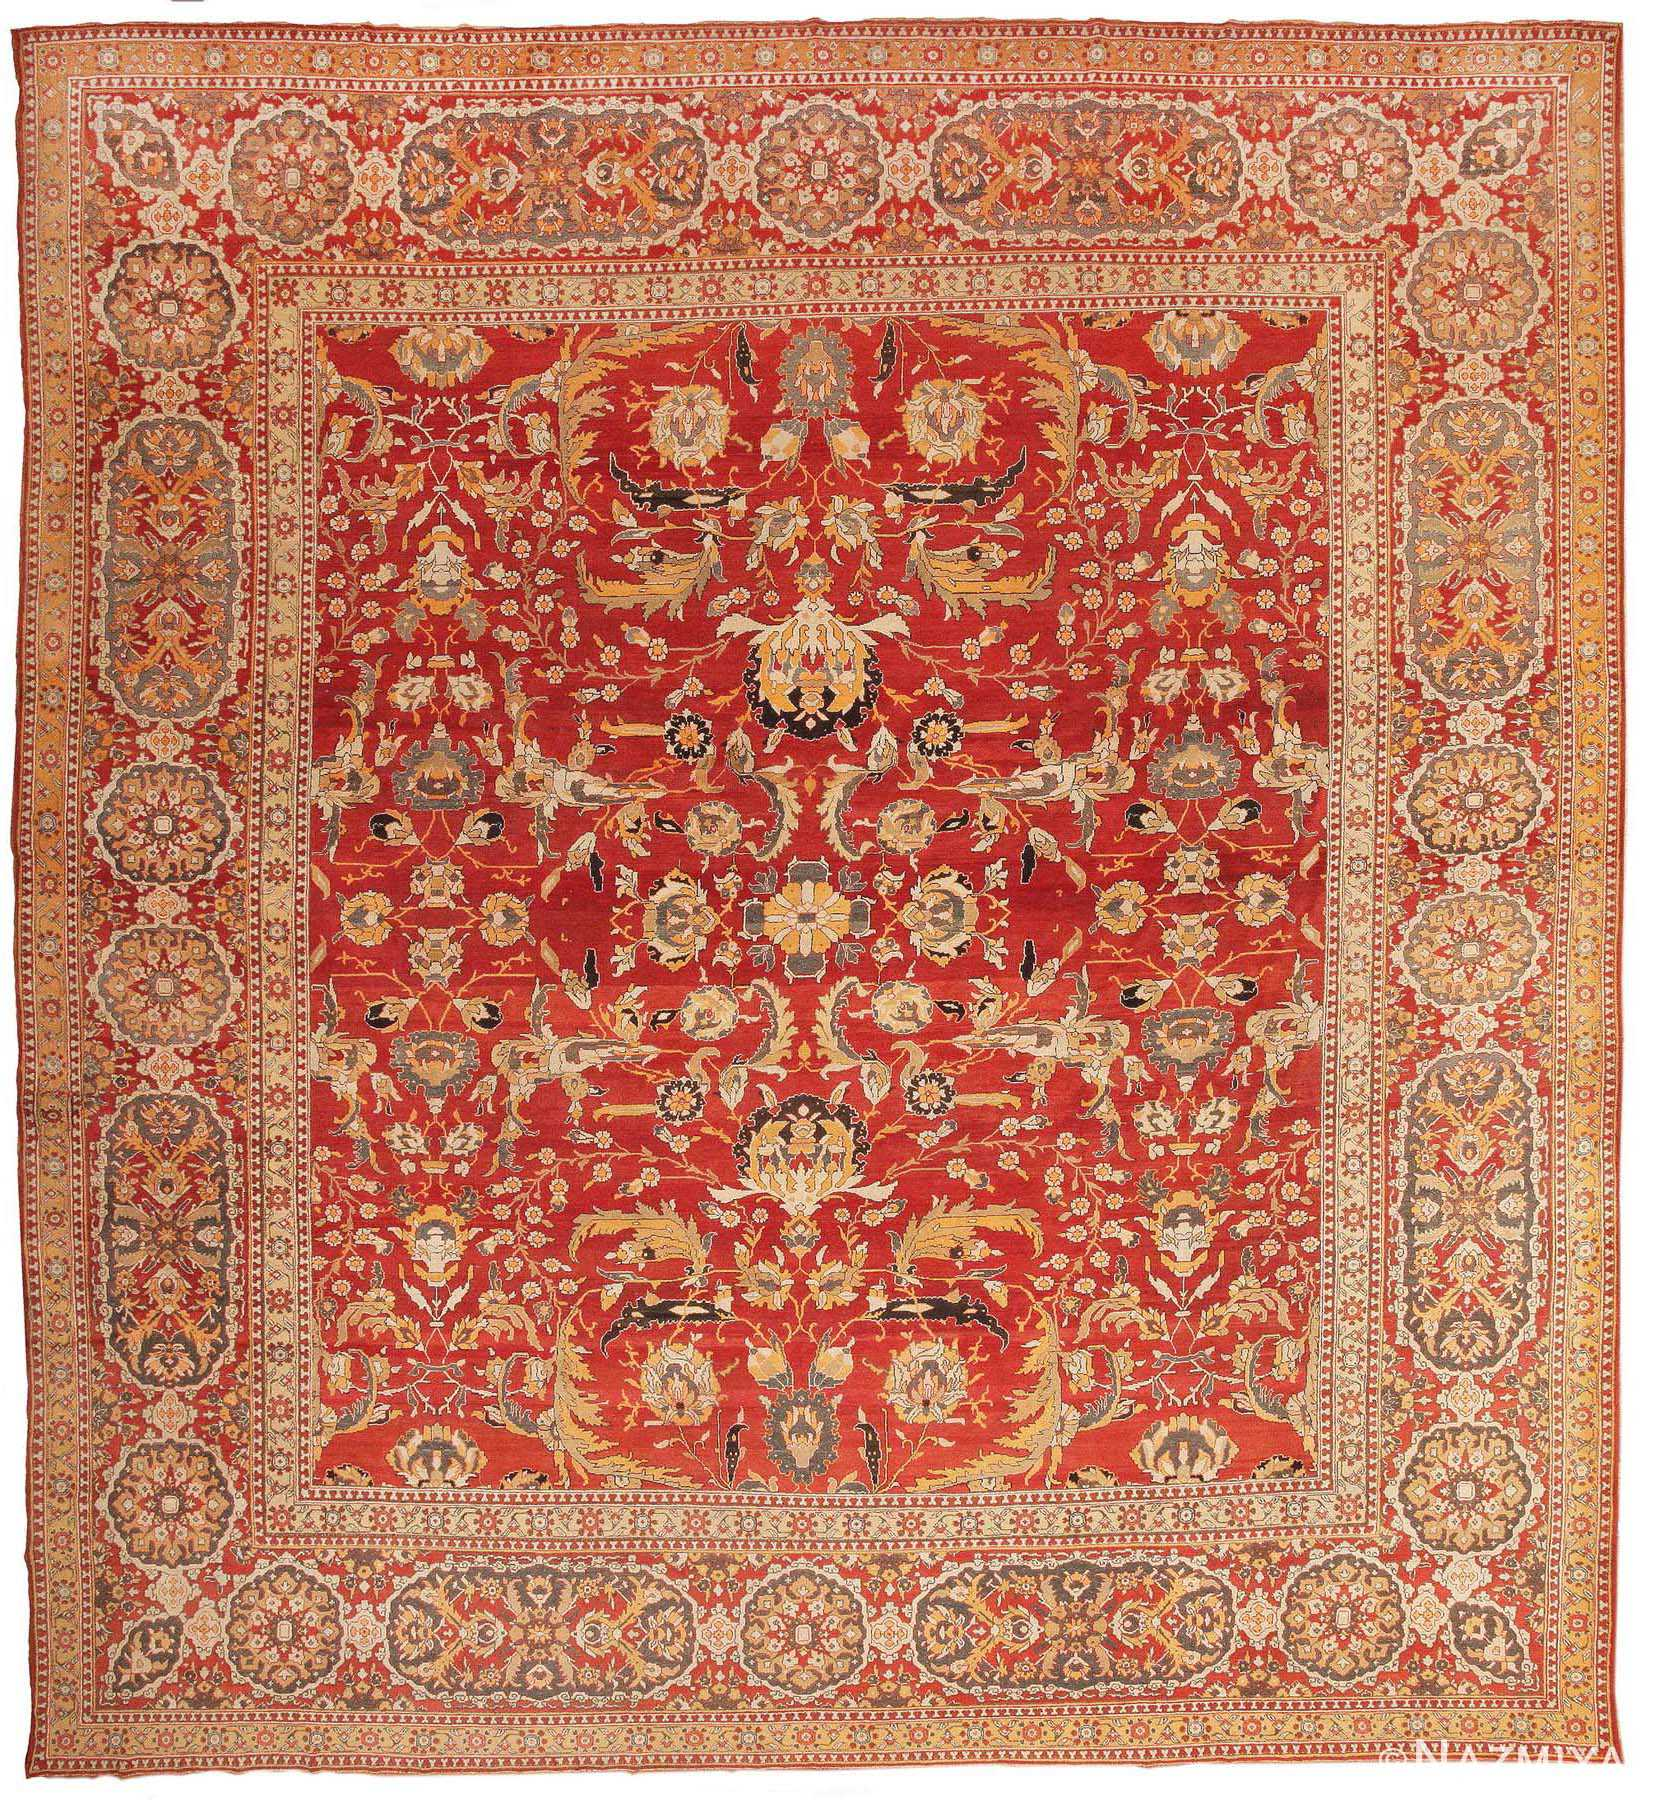 Large Square Antique Agra Indian Rug 44615 Nazmiyal